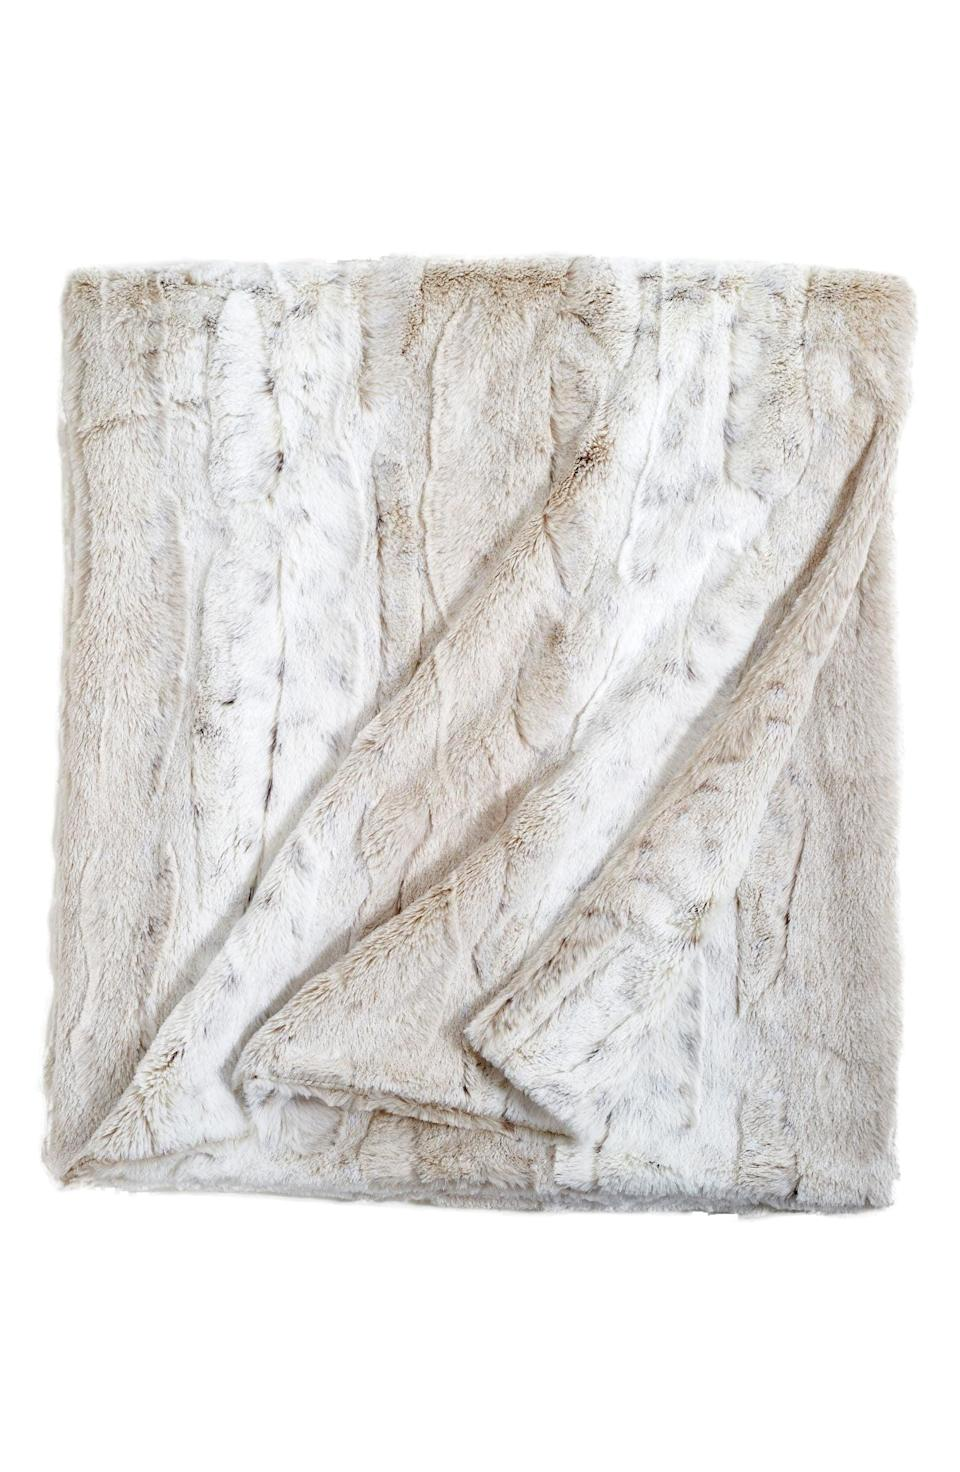 <p>Not only will the ultra-plush <span>Peri Home Faux Fur Throw Blanket</span> ($50) be their new best friend, it'll look stunning in their home. The faux fur is so soft, you might just keep this one for yourself. </p>